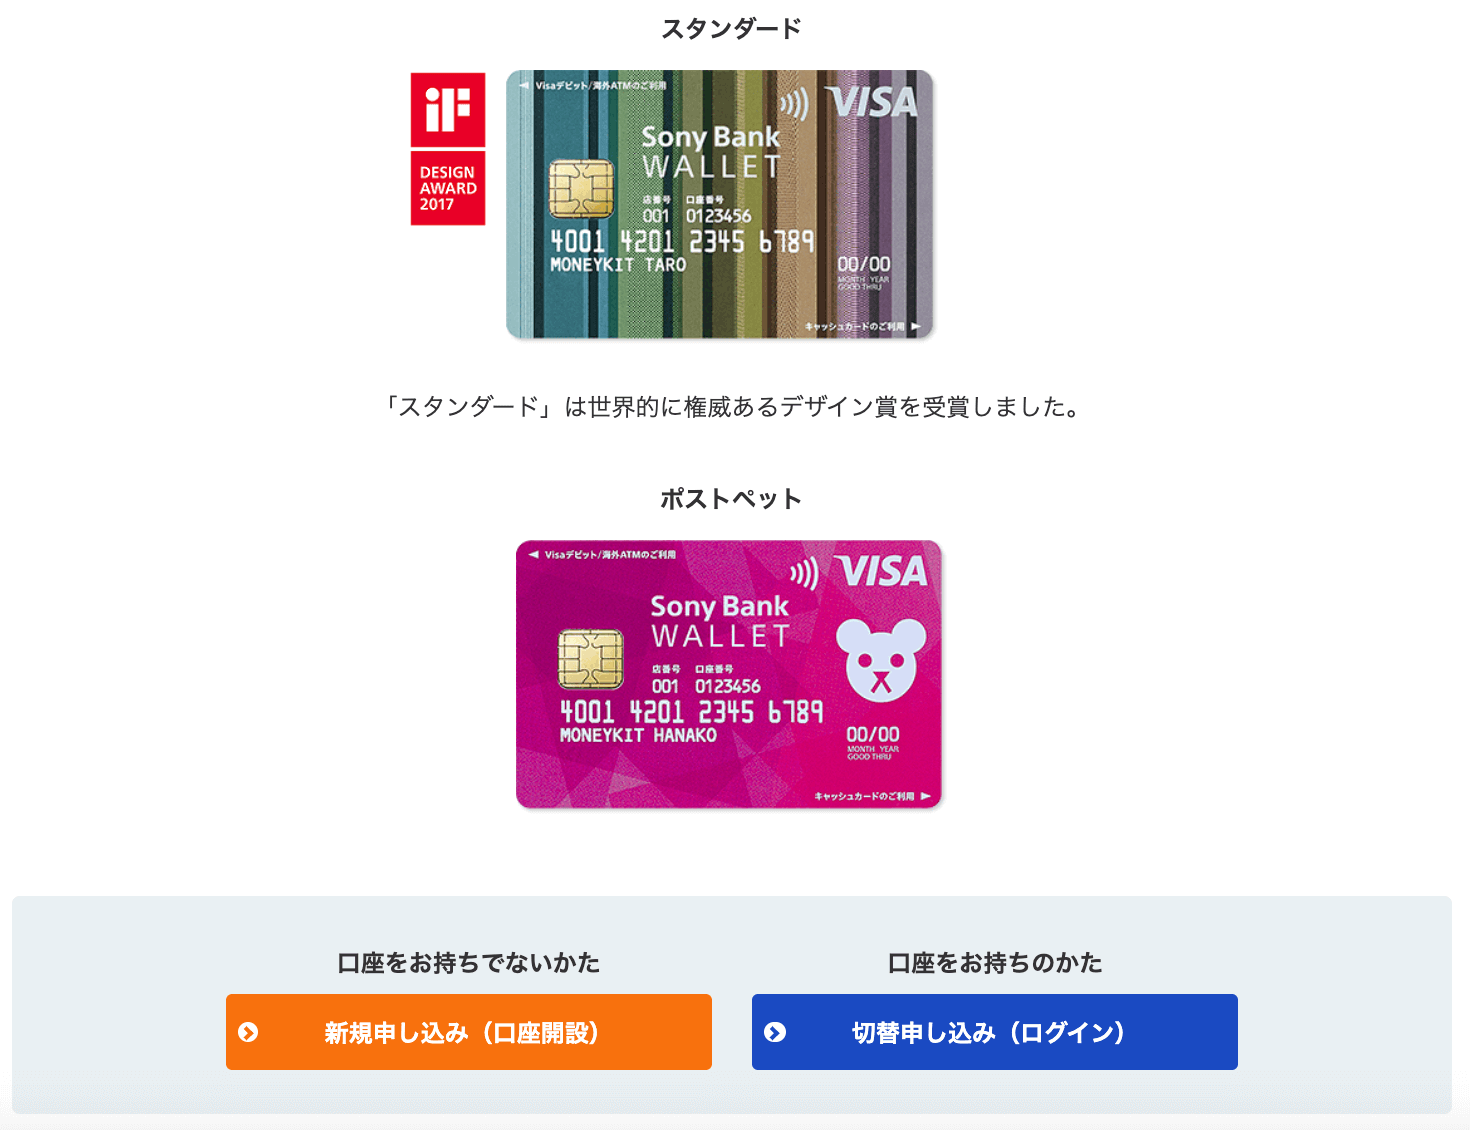 Sony Bank WALLET のお申し込み画面(2019年9月版)